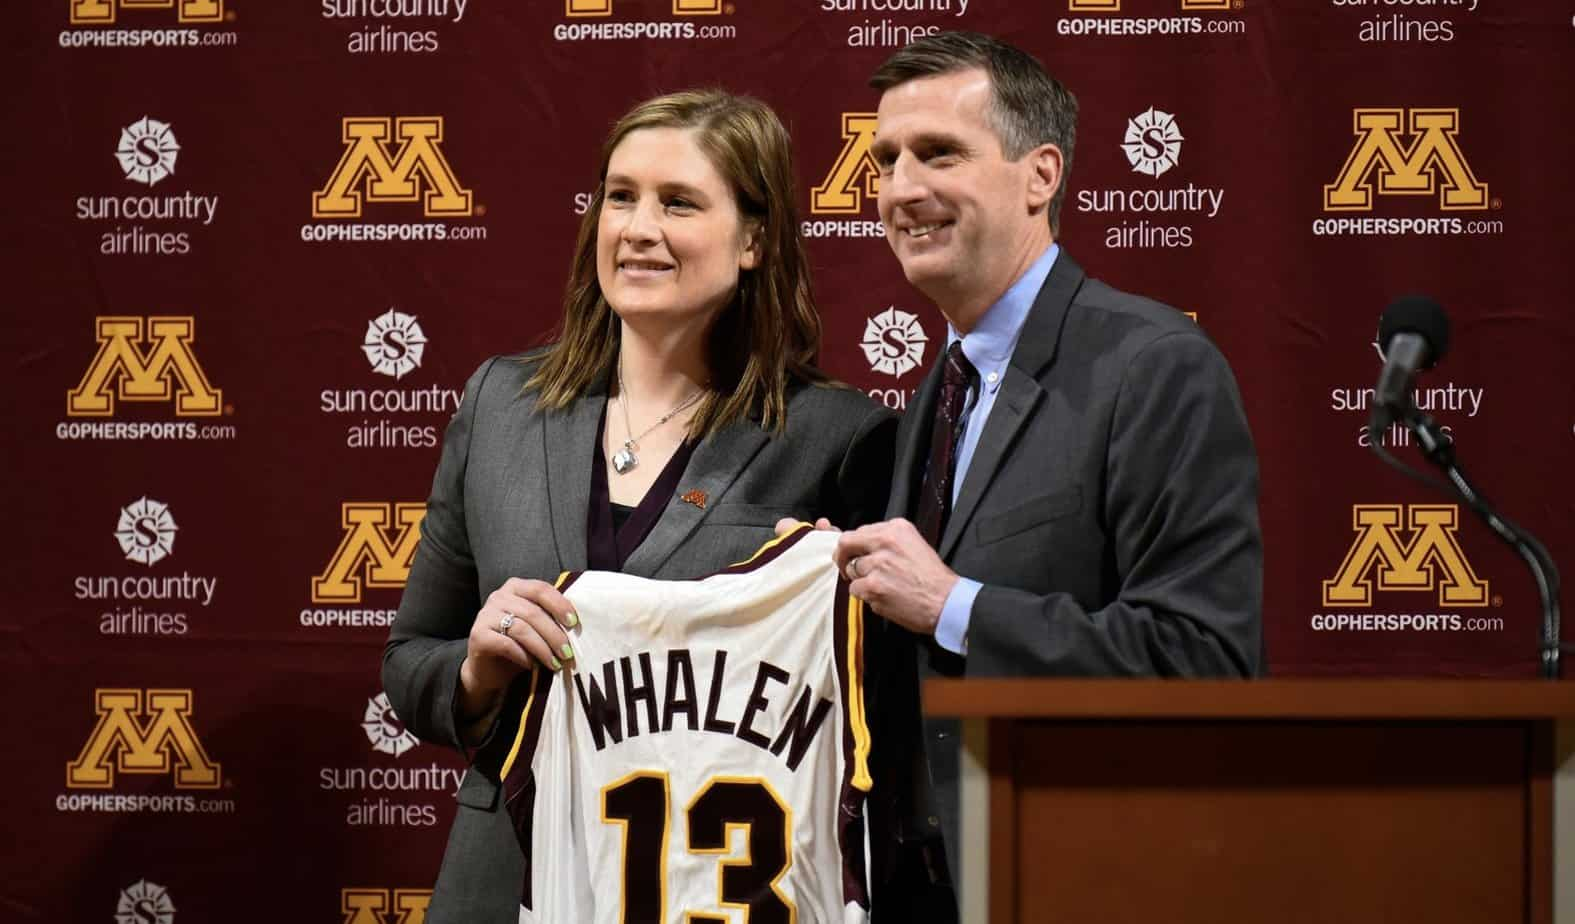 b054b5f31a70c3 The Lindsay Whalen Contract is Straight Out of the Bargain Bin -  MinnesotaSportsFan.com